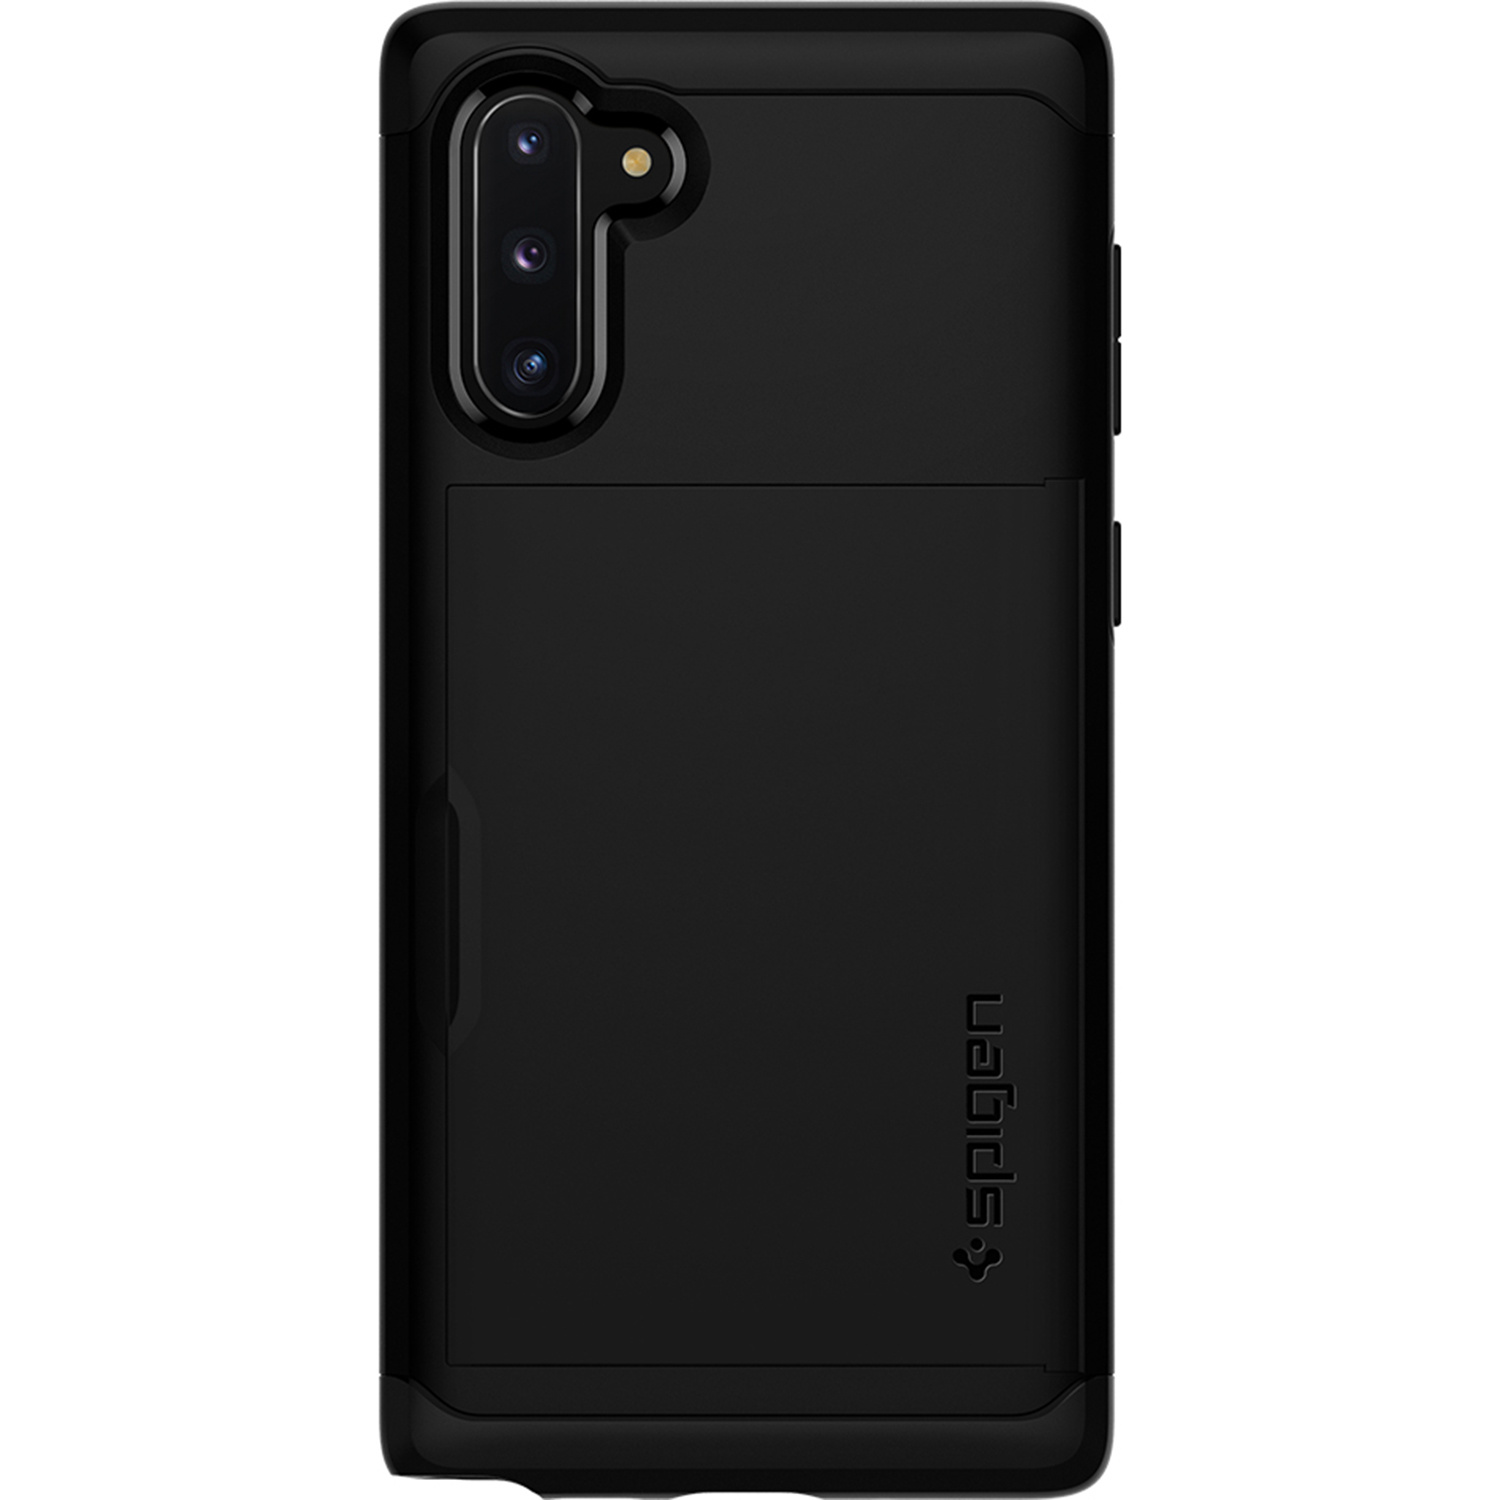 Spigen Slim Armor CS Backcover voor de Samsung Galaxy Note 10 - Zwart